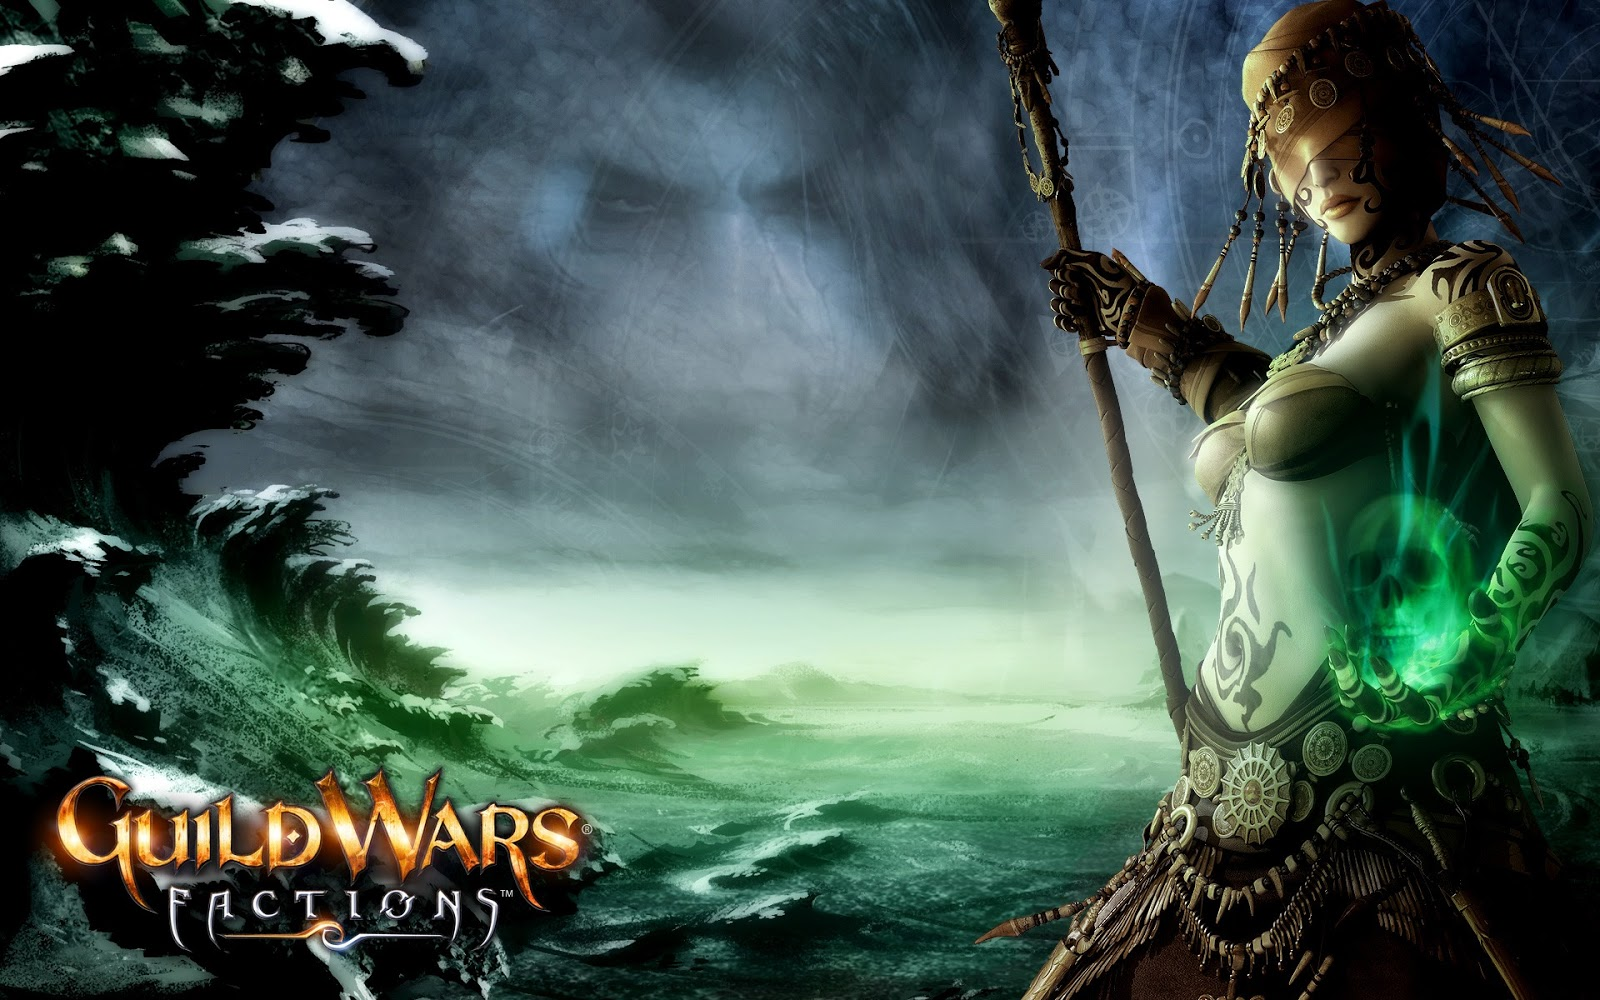 guild wars factions wallpapers - photo #3